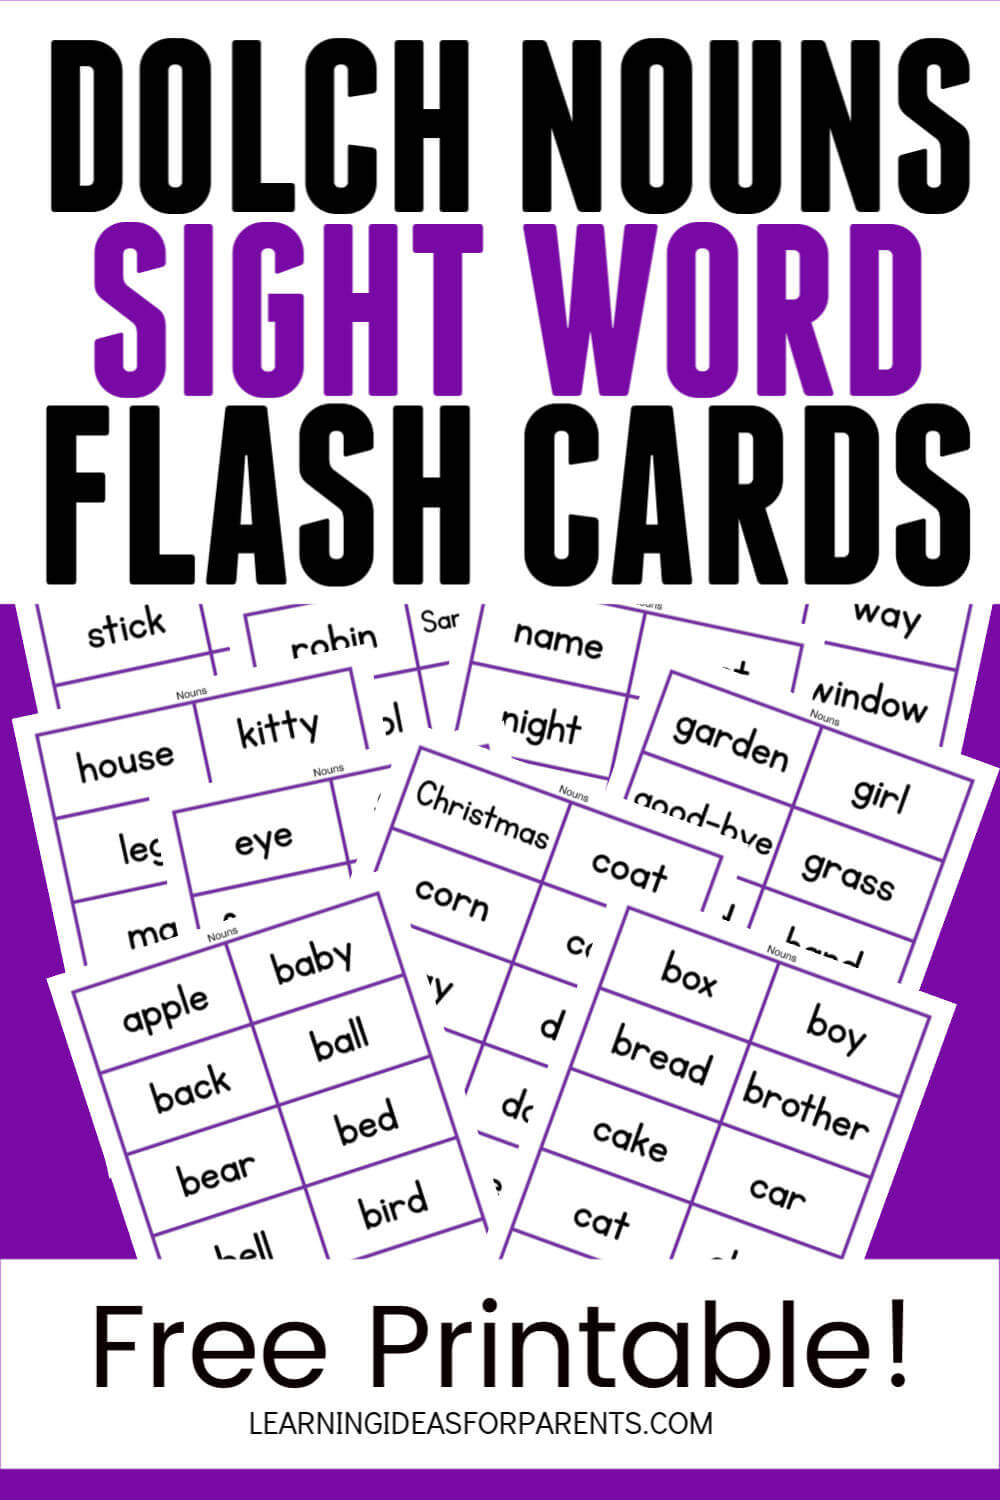 Free printable Dolch nouns sight word flash cards